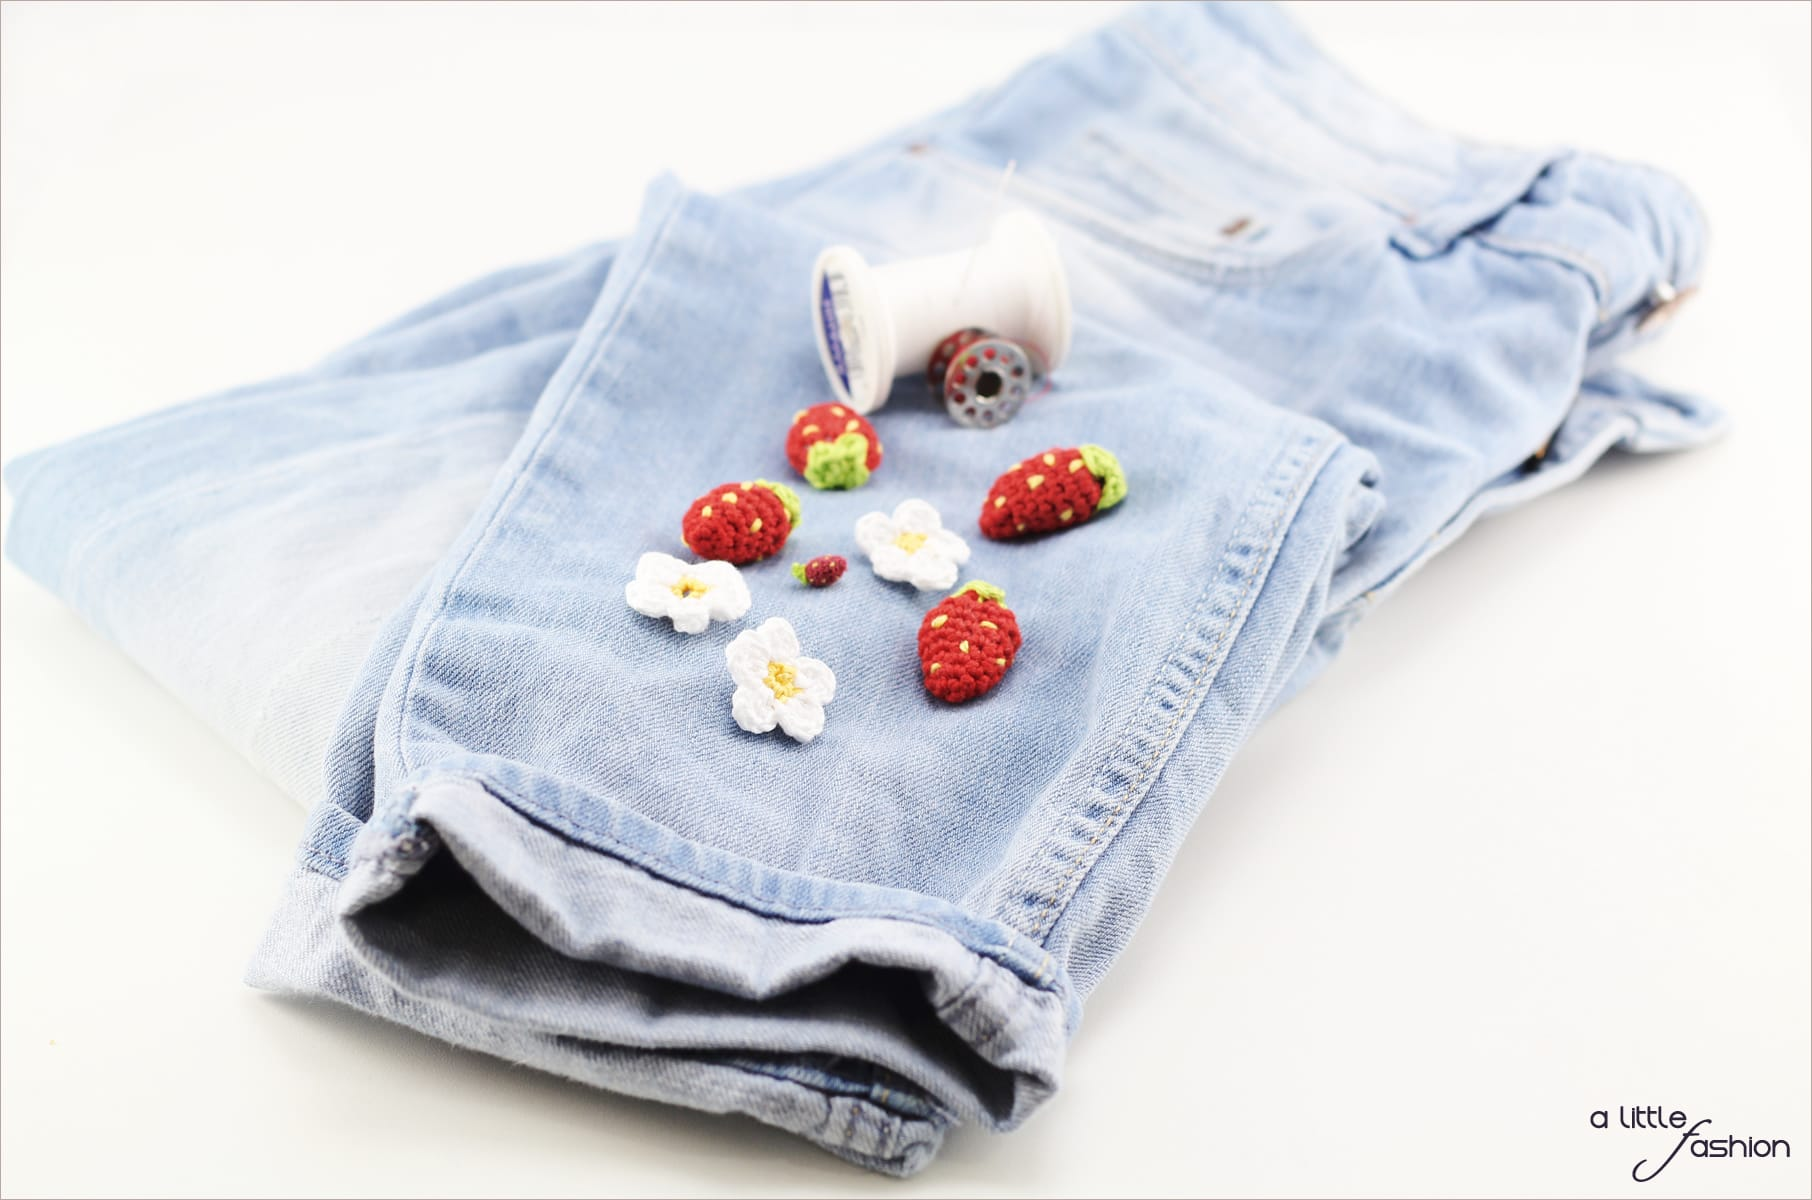 Patch it up! Jeanshose mit Häkel-Erdbeeren aufpeppen | A Little Fashion | https://www.filizity.com/diy/patch-it-up-jeanshose-mit-haekel-erdbeeren-aufpeppen